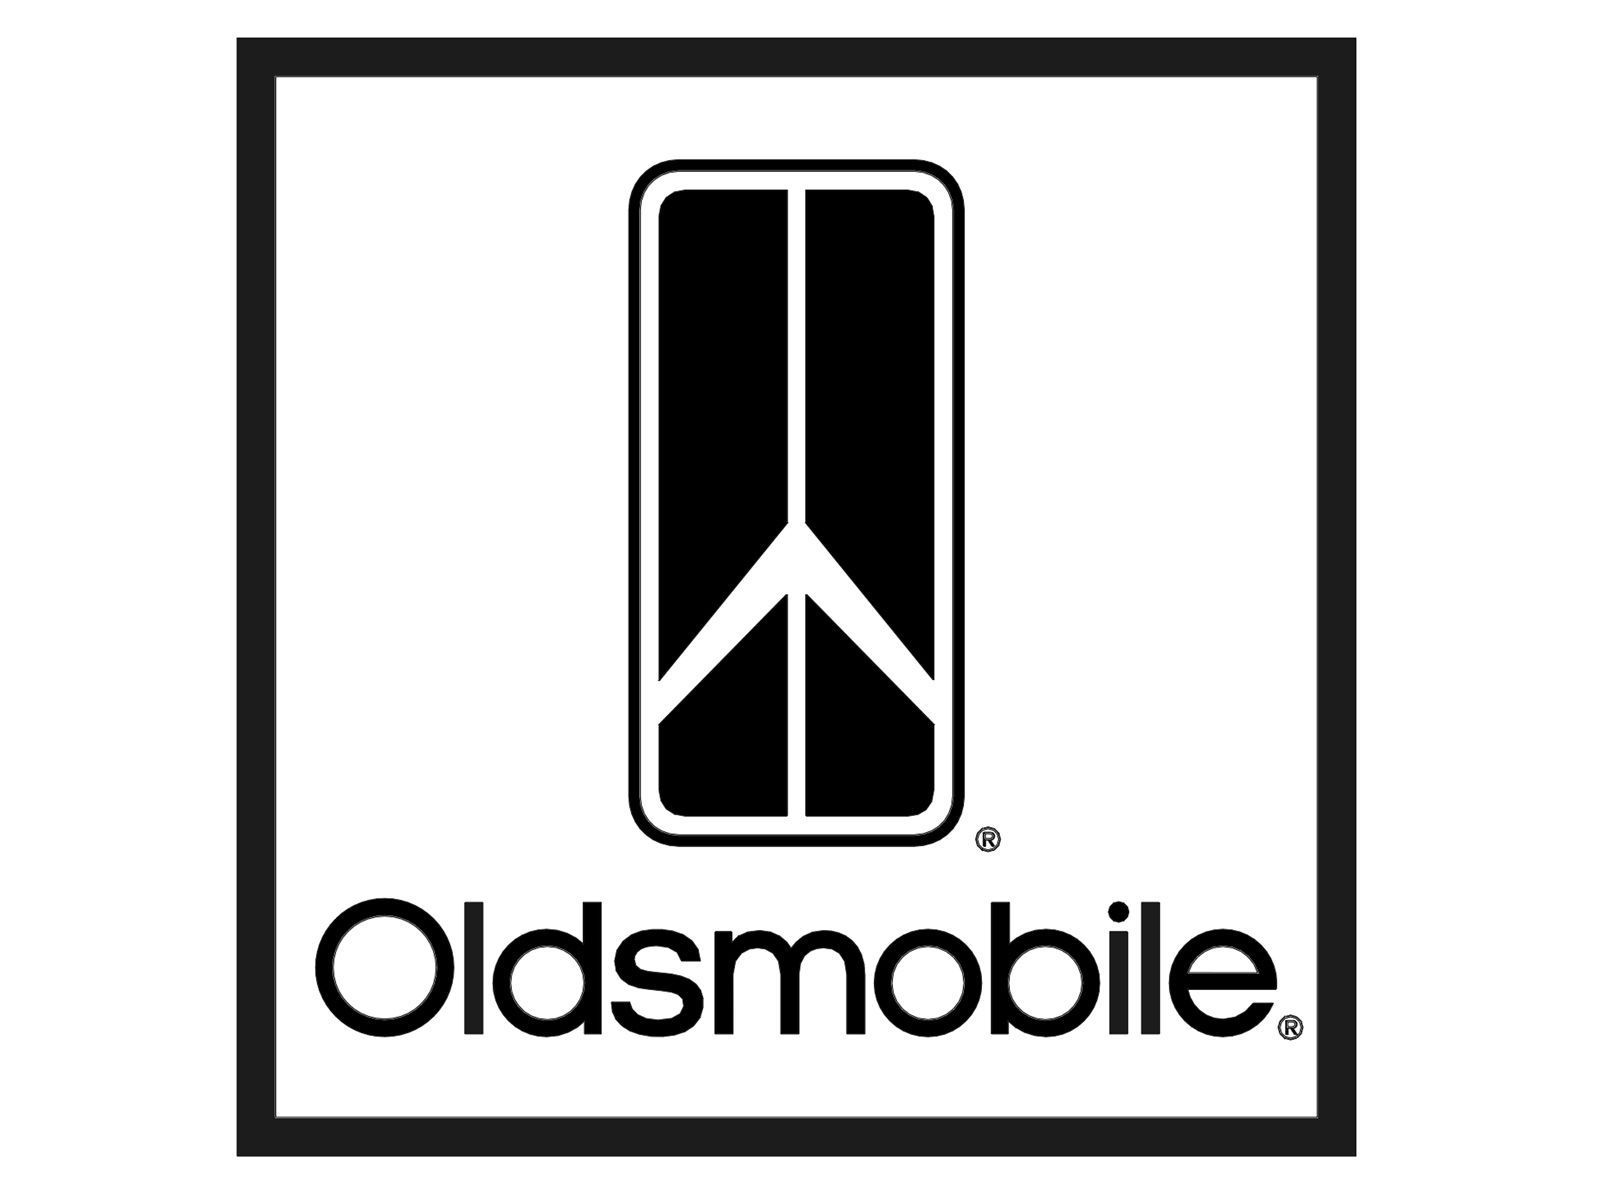 Oldsmobile Logo - images on oldsmobile logo | 2000 Oldsmobile Logo Carwallpapershu ...